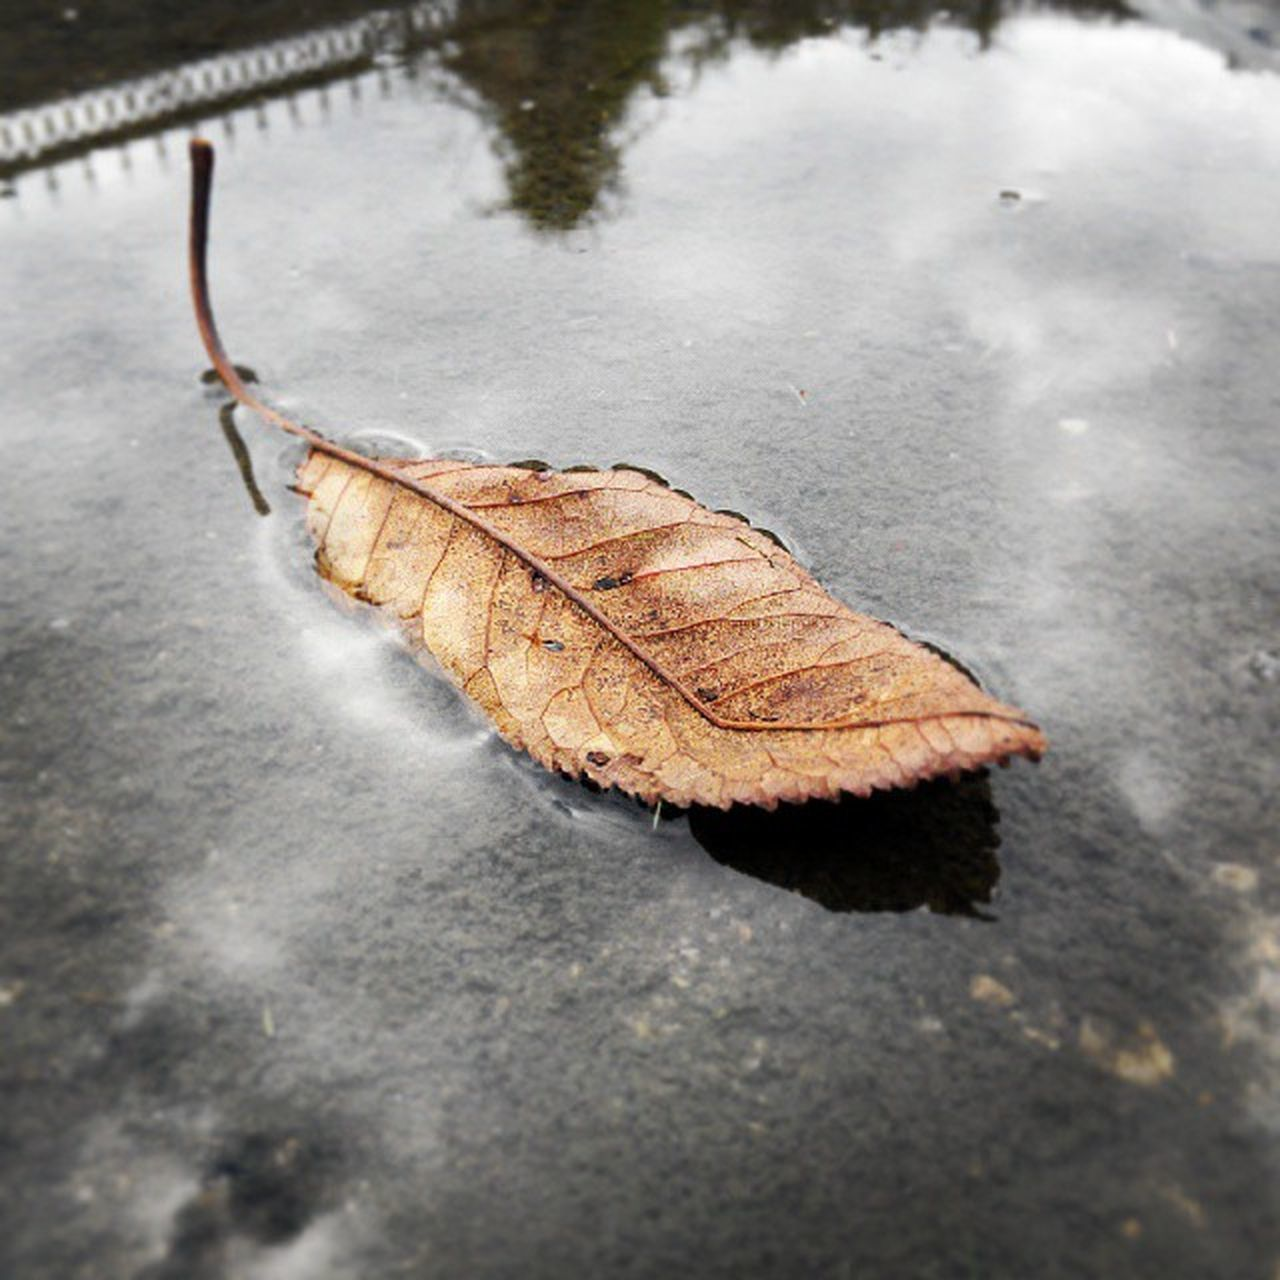 leaf, outdoors, day, high angle view, nature, close-up, one animal, no people, animals in the wild, animal themes, water